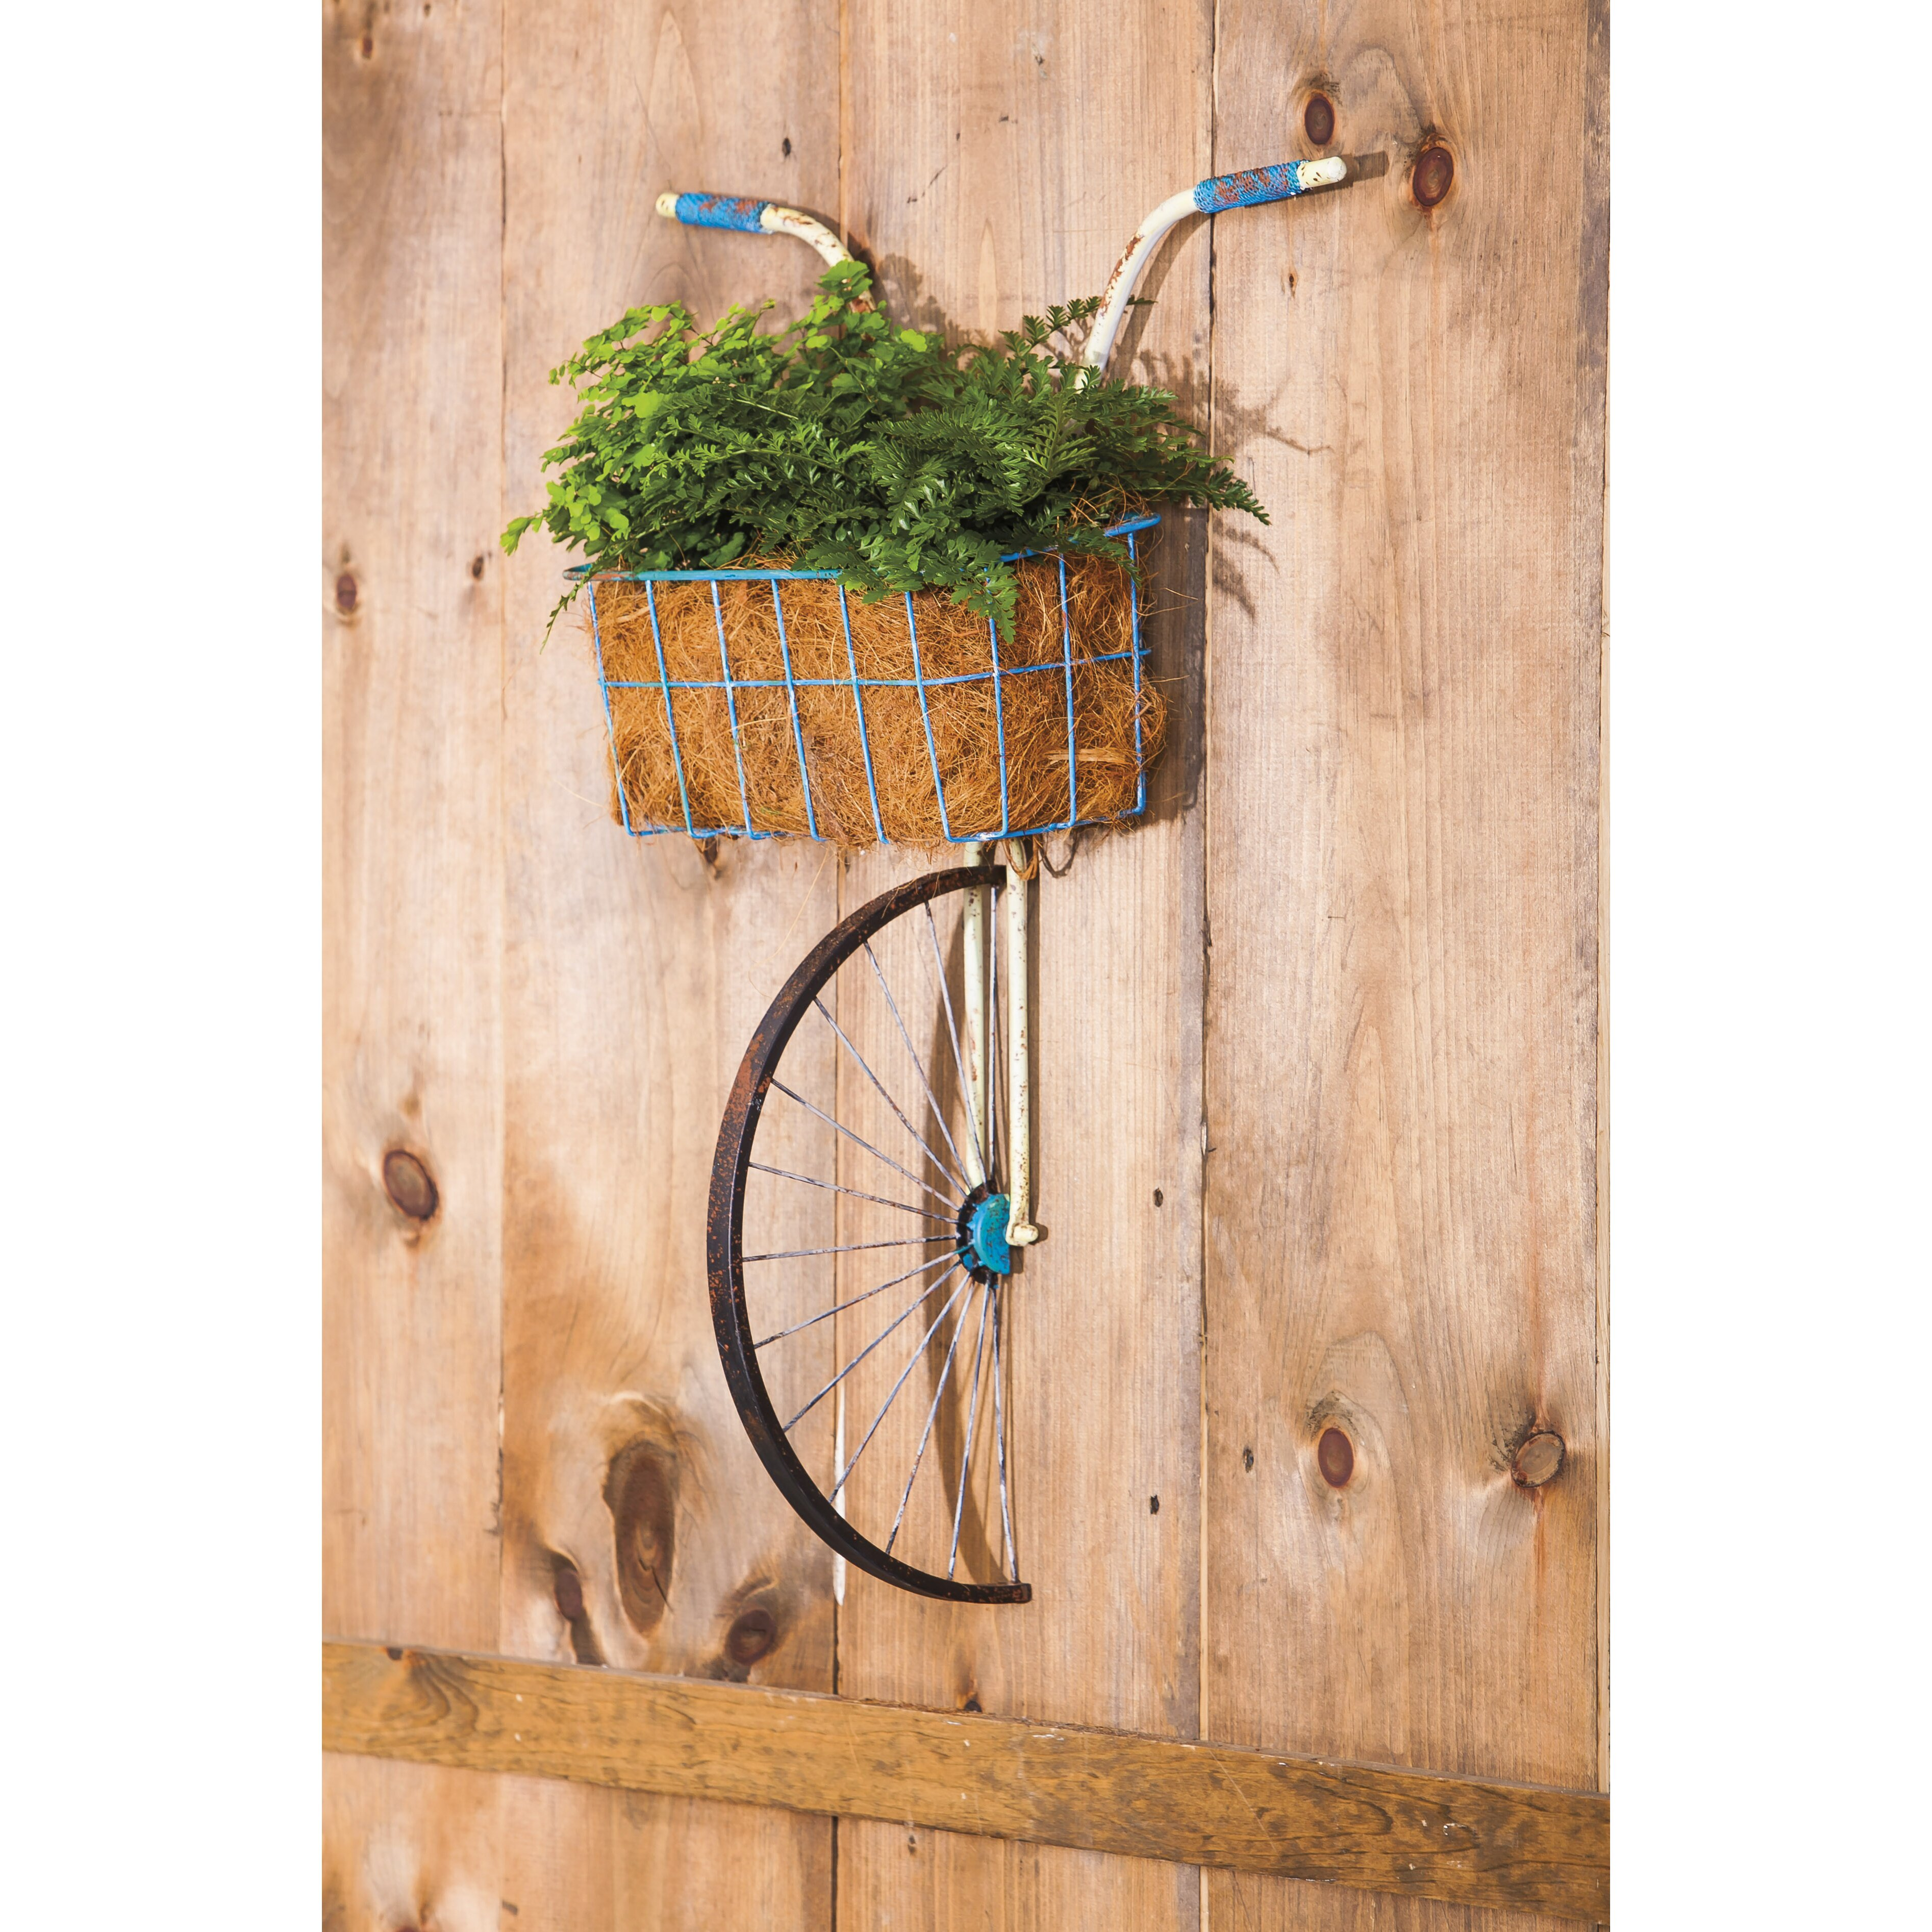 Front Basket Metal Bicycle and Planter Wall Decor Wayfair : Front Basket Metal Bicycle and Planter Wall Decor 6M444 from www.wayfair.com size 3787 x 3787 jpeg 2340kB